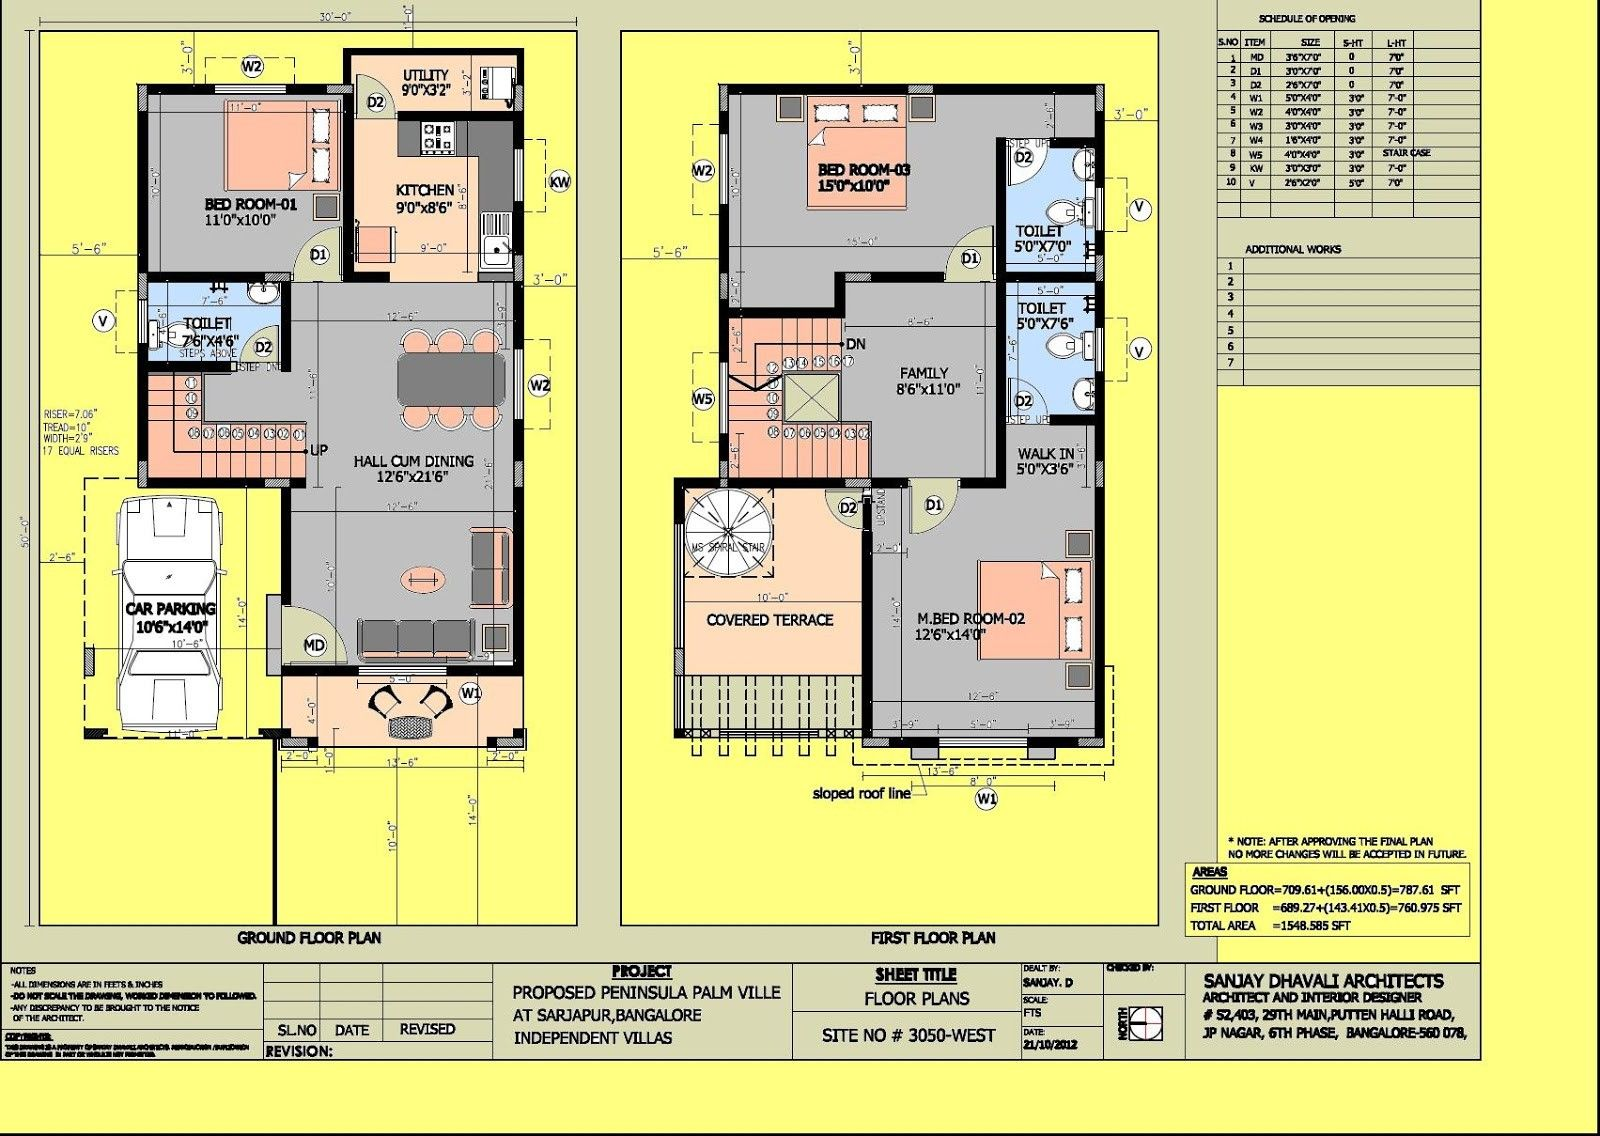 Glamorous 40 X House Plans Design Ideas Of 28 Home 30 X Arresting By How To Plan Floor Plans House Floor Plans